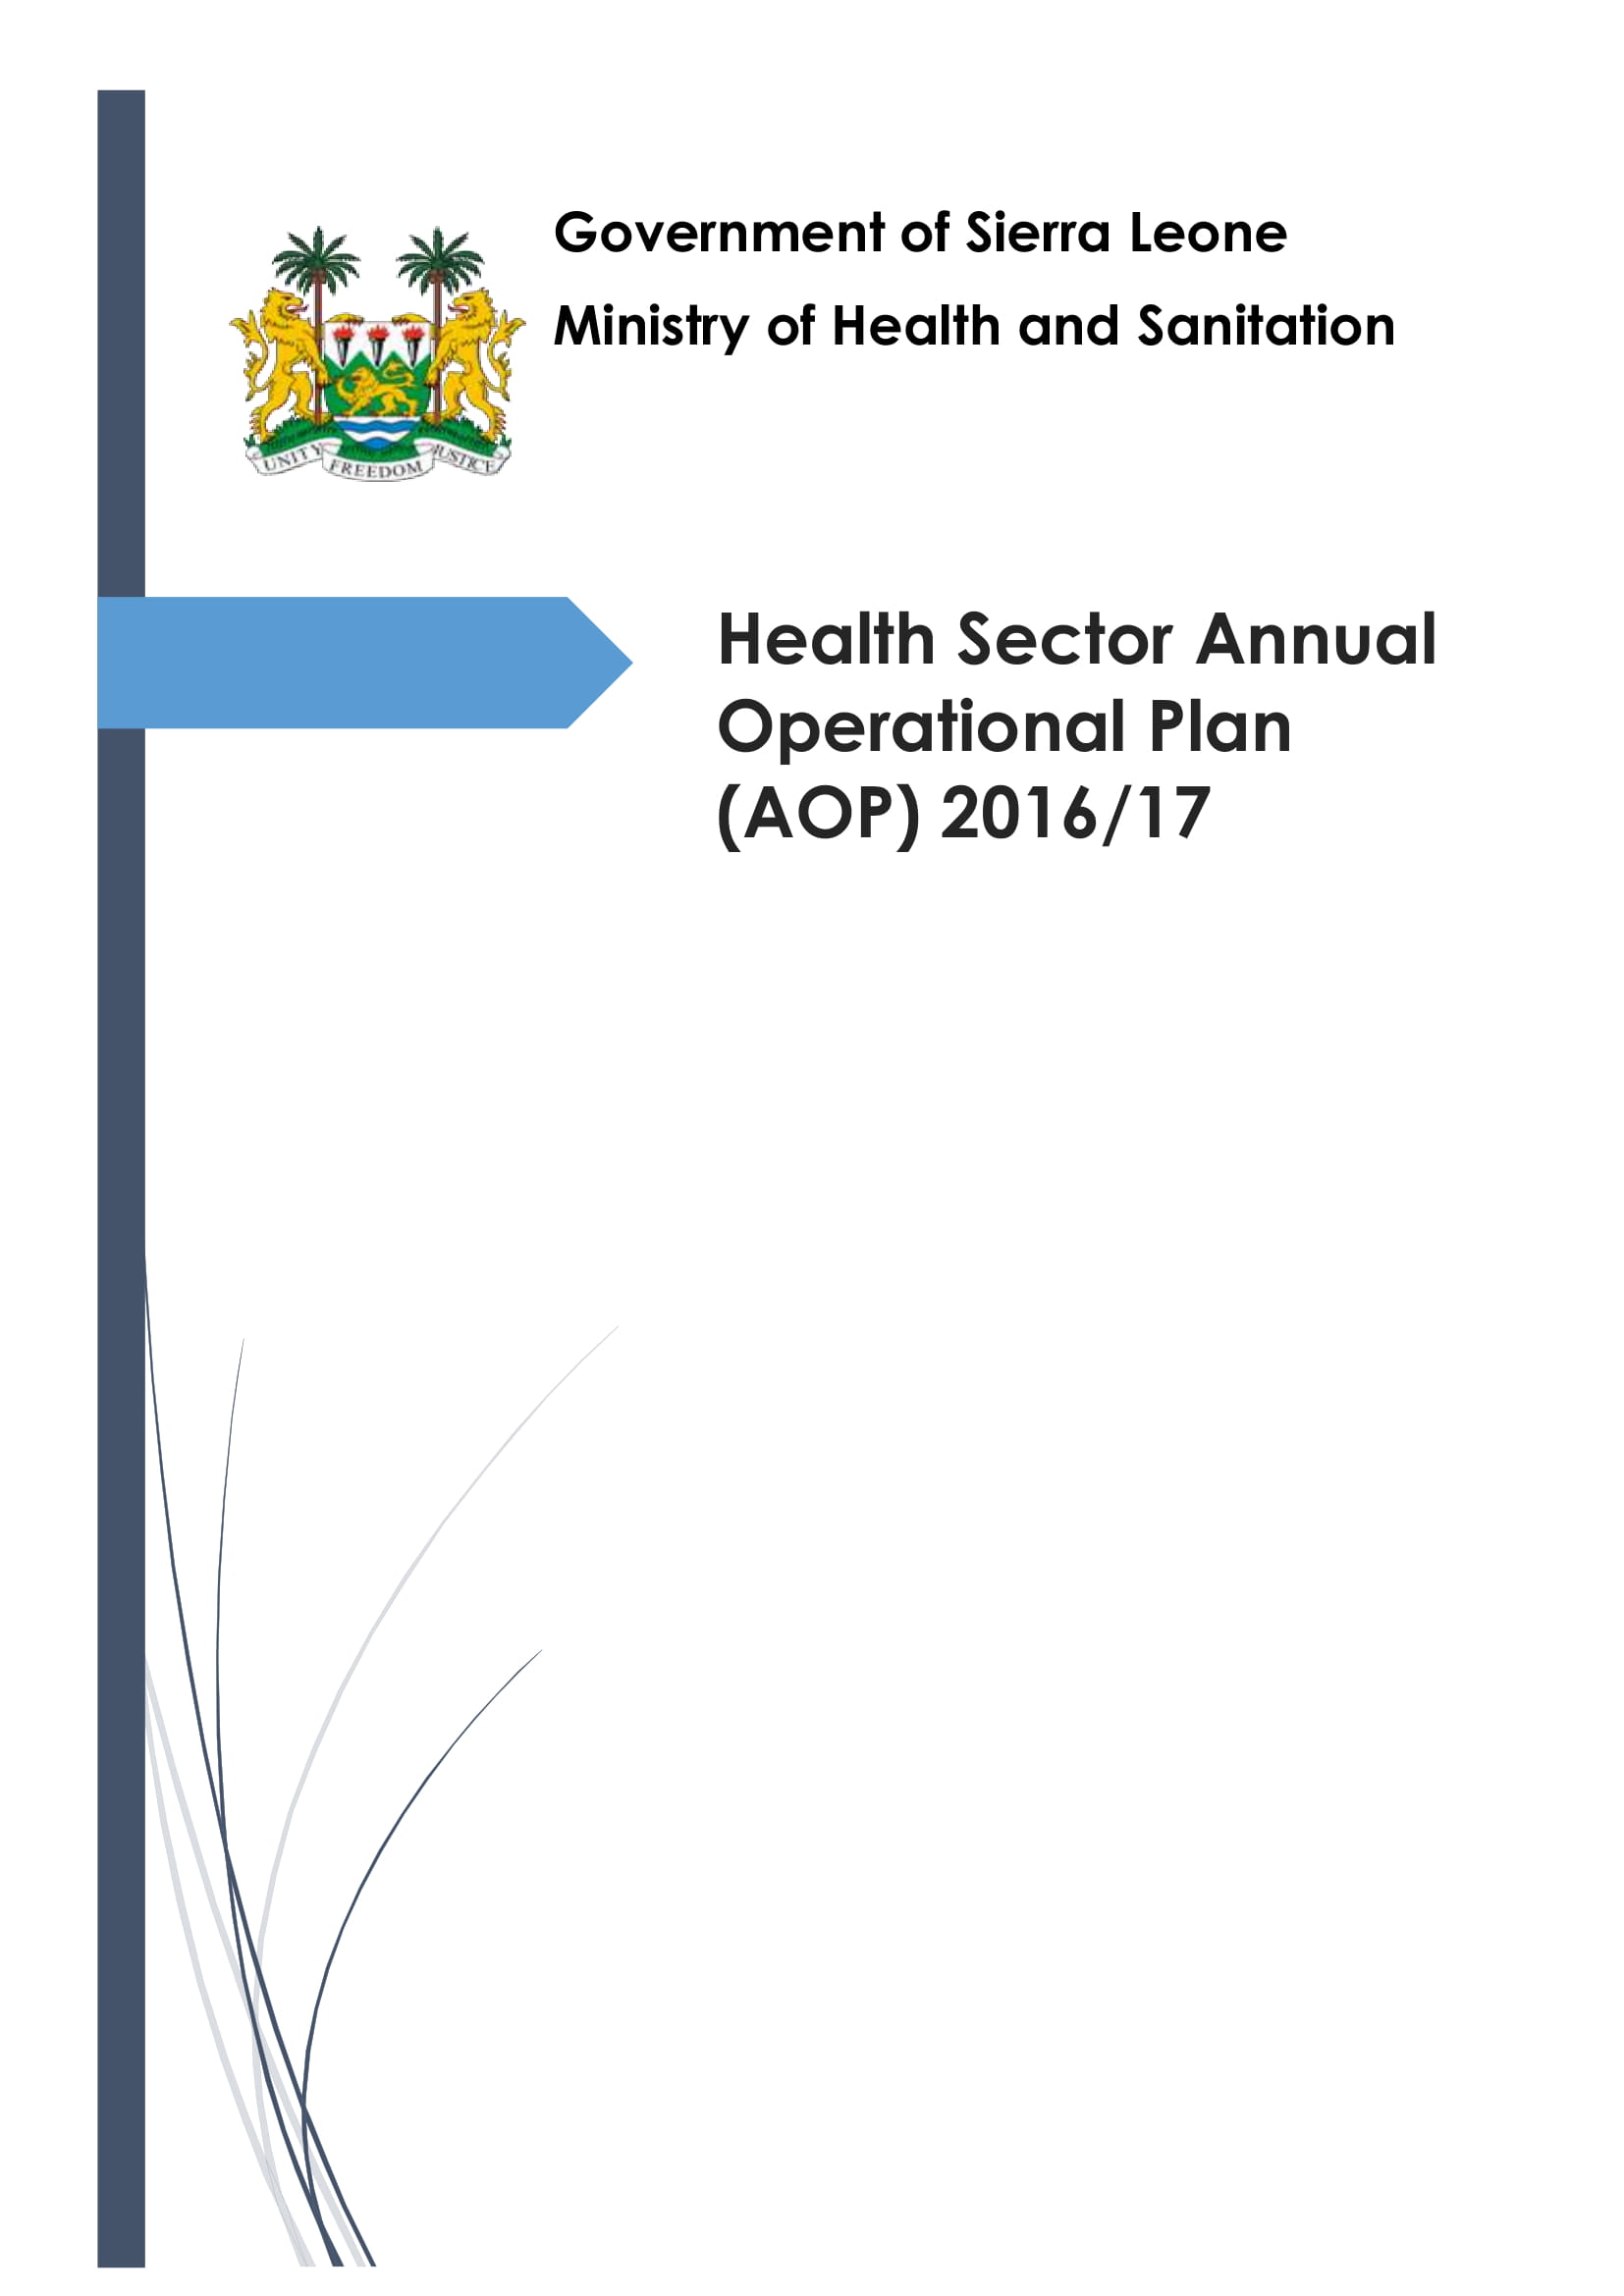 health sector annual operational plan example 001